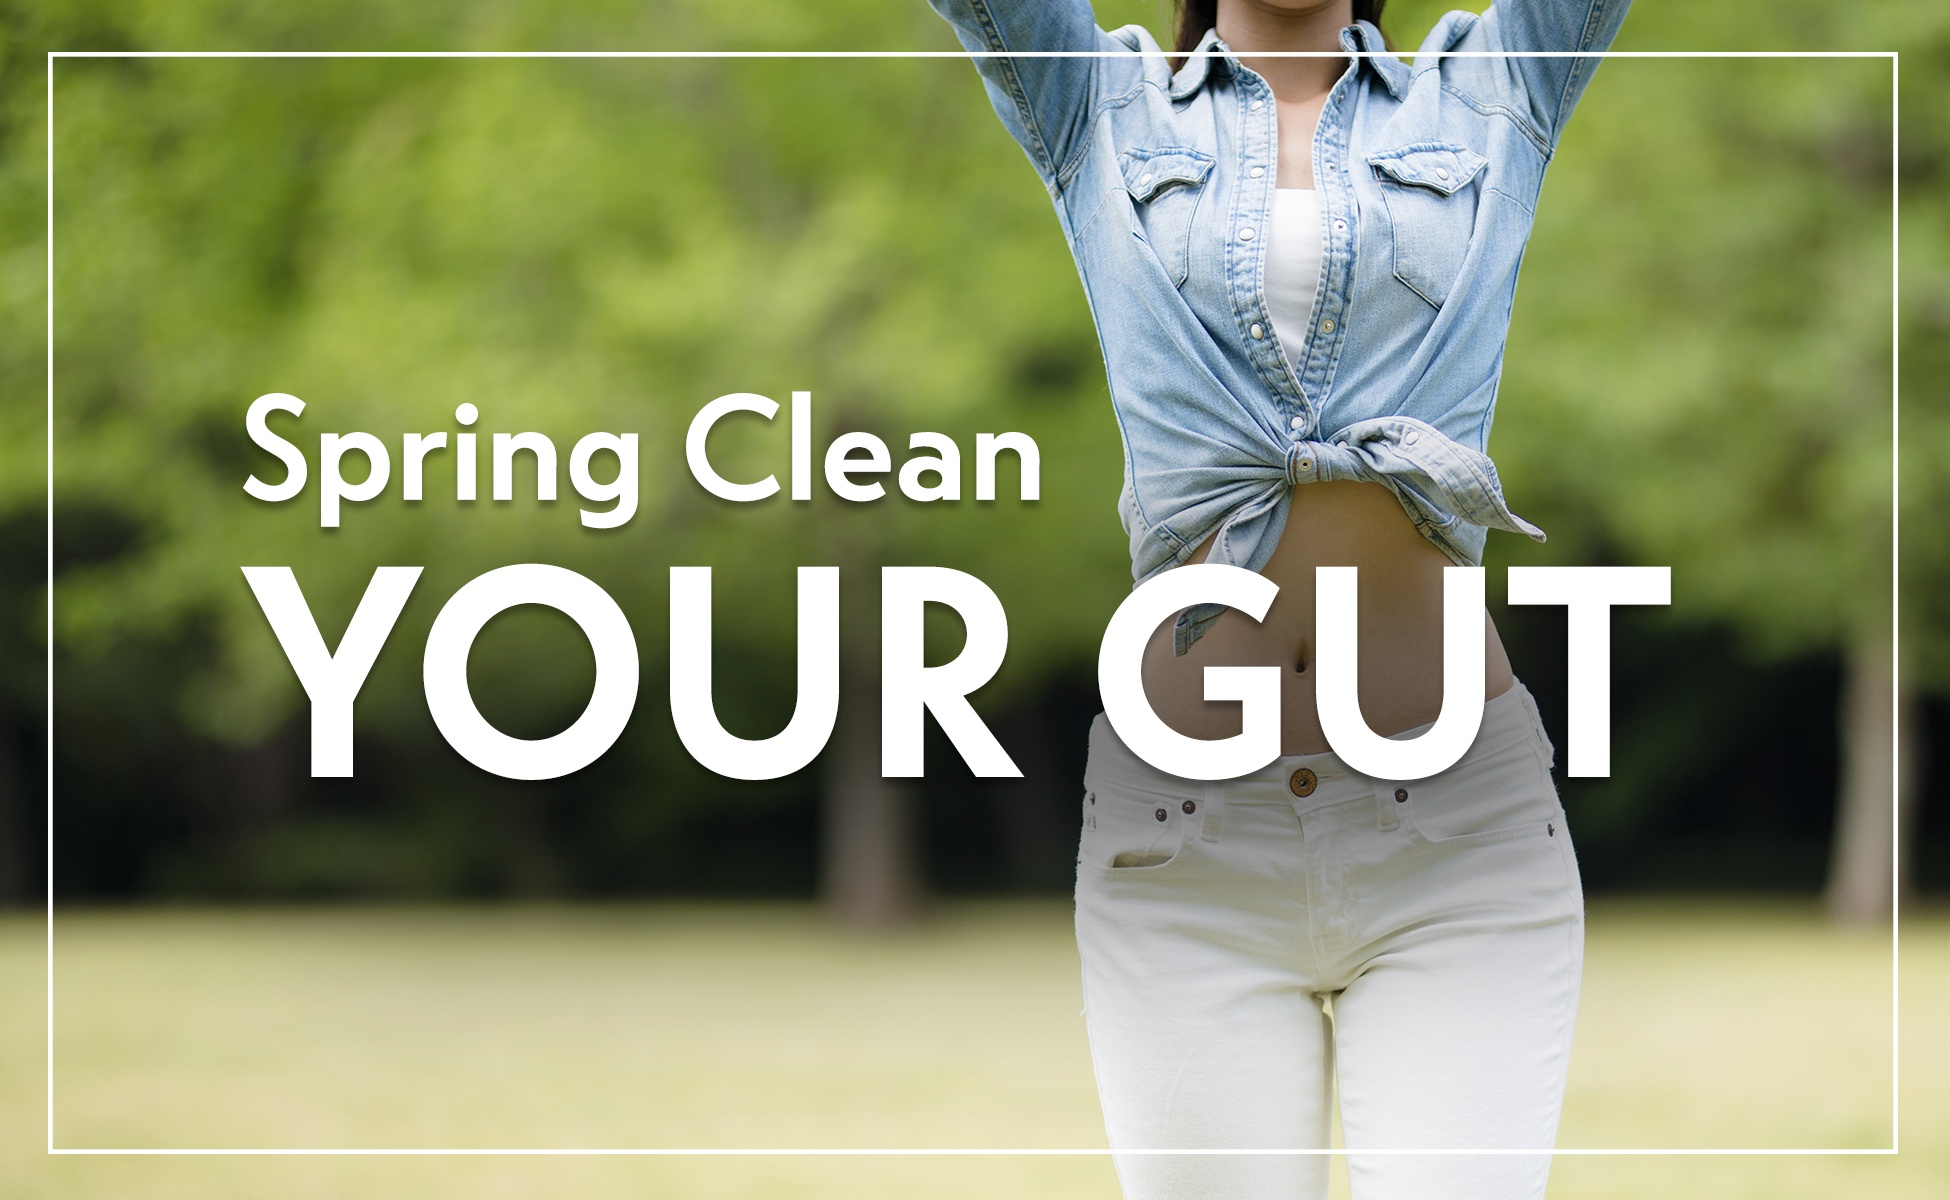 Spring Clean Your Gut